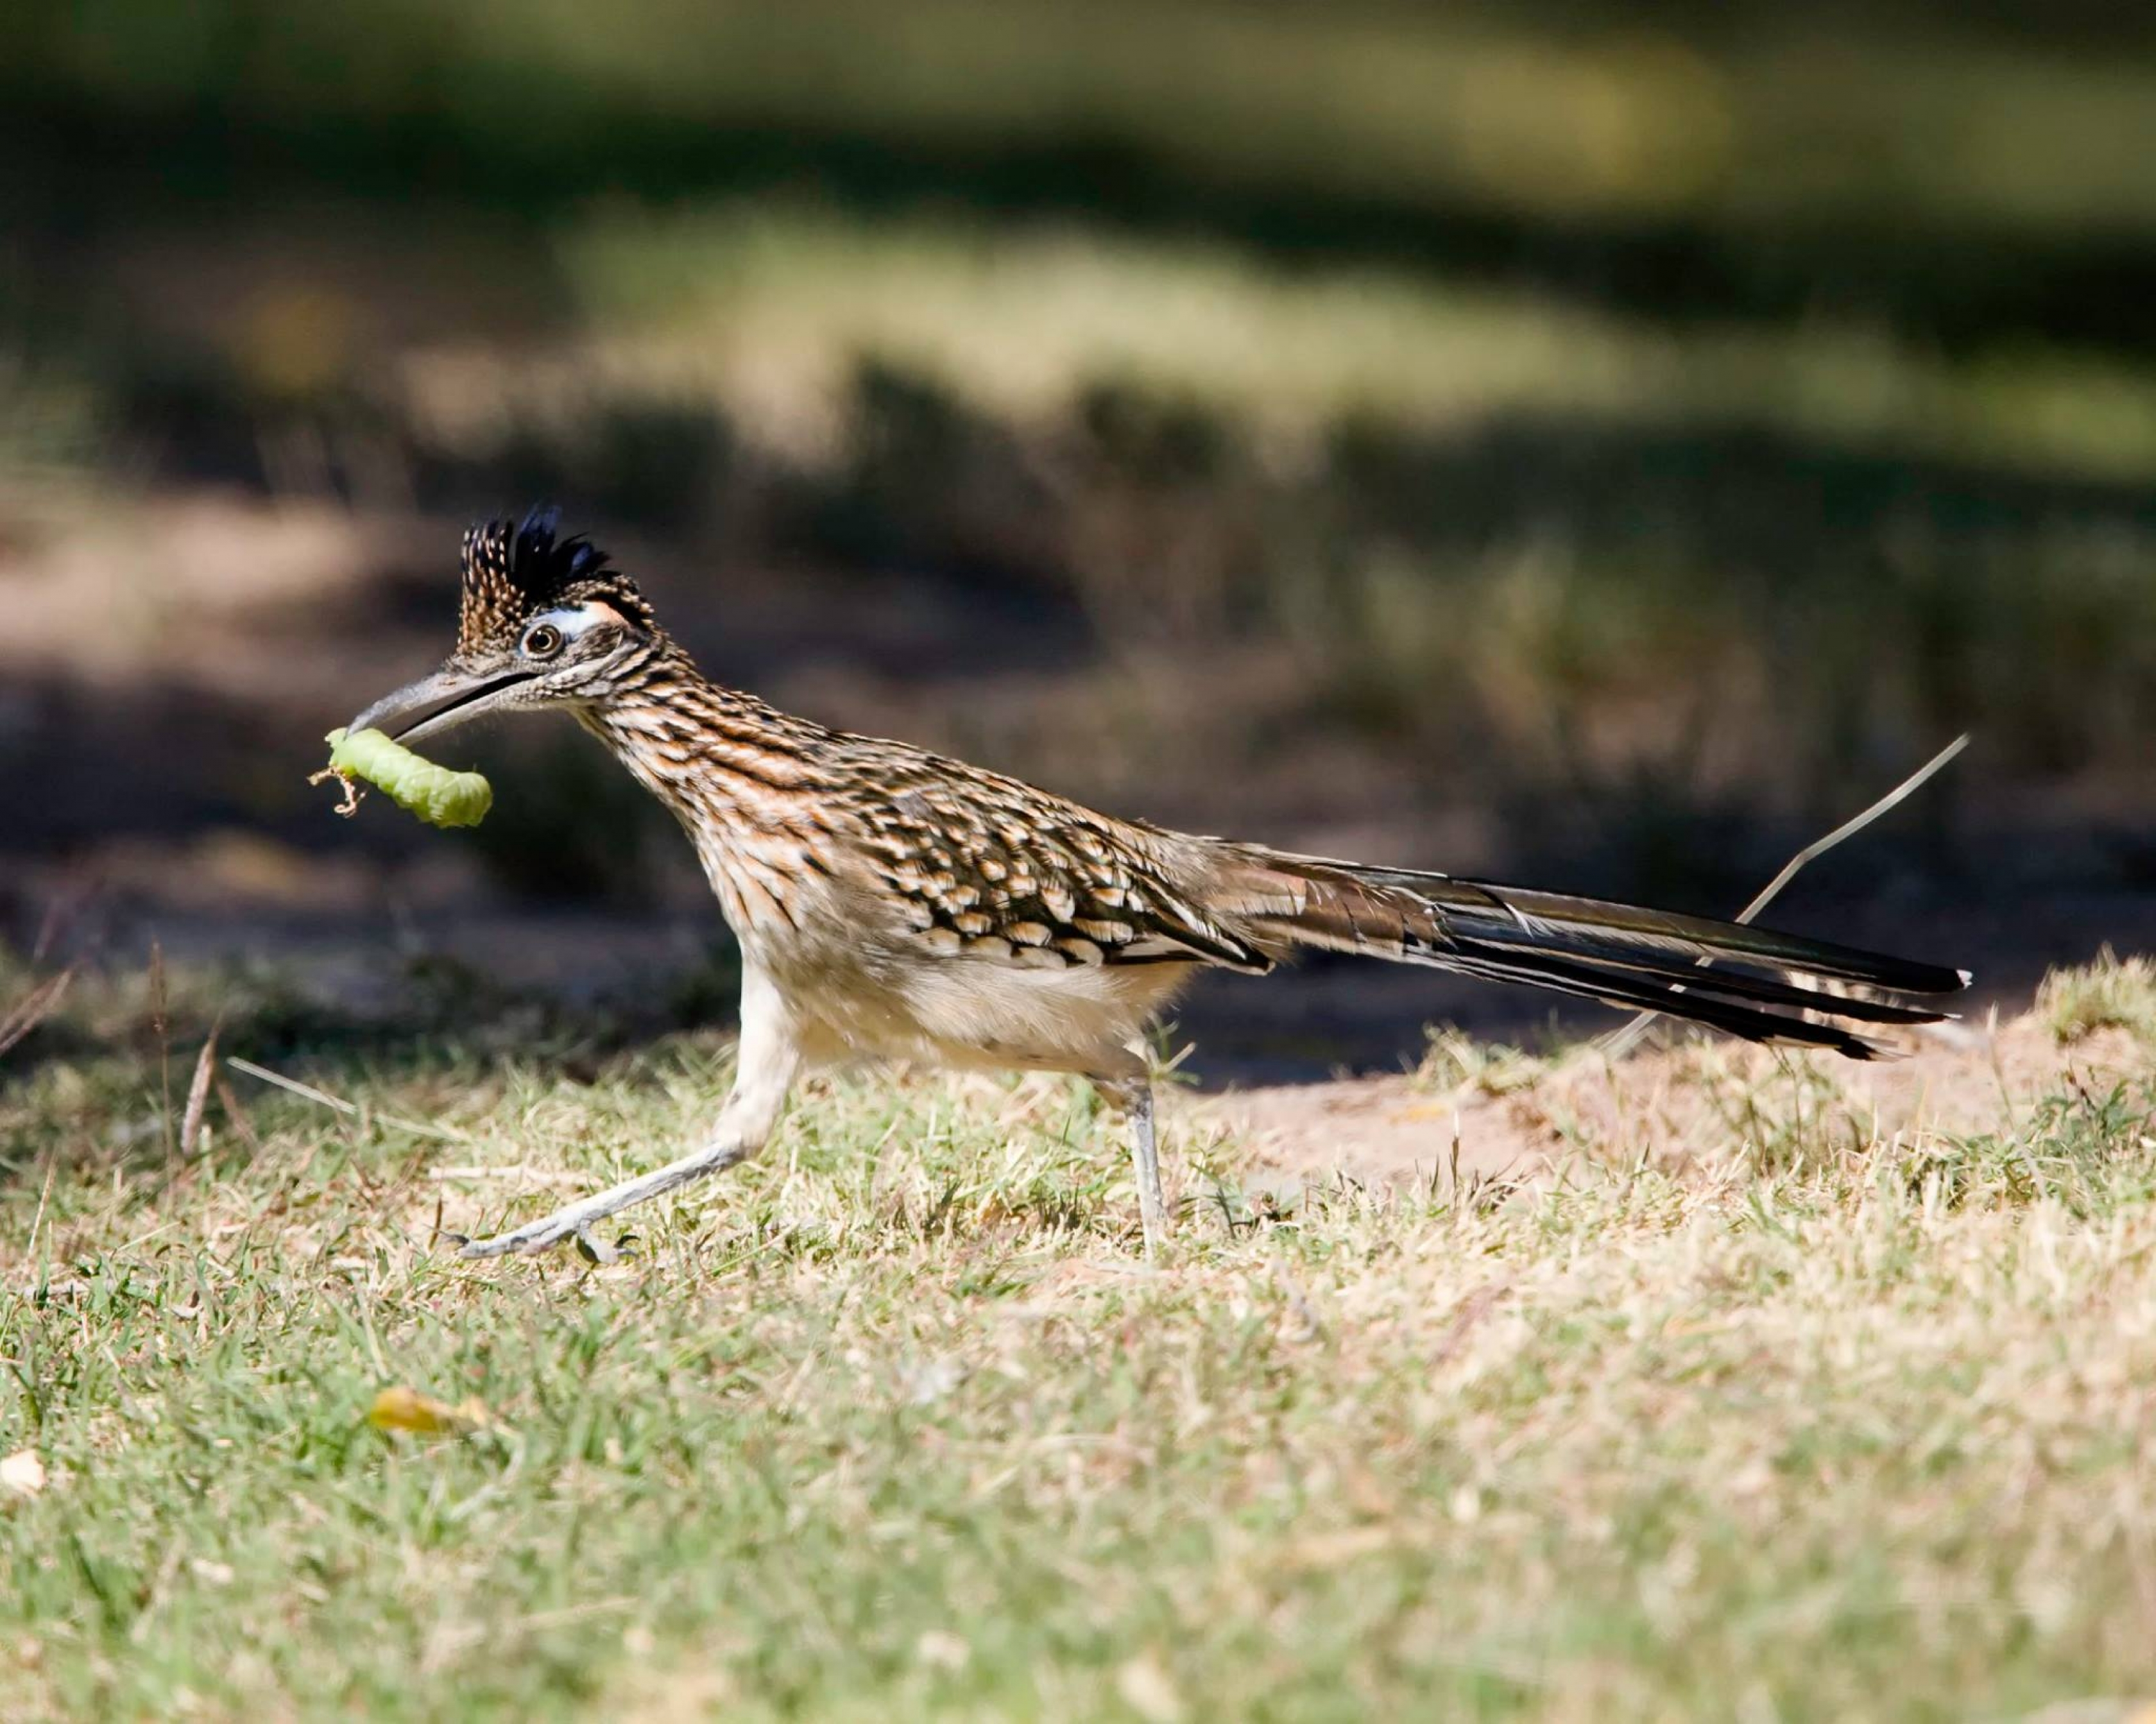 A roadrunner with a green caterpillar in its mouth running on the grass at Big Bend National Park